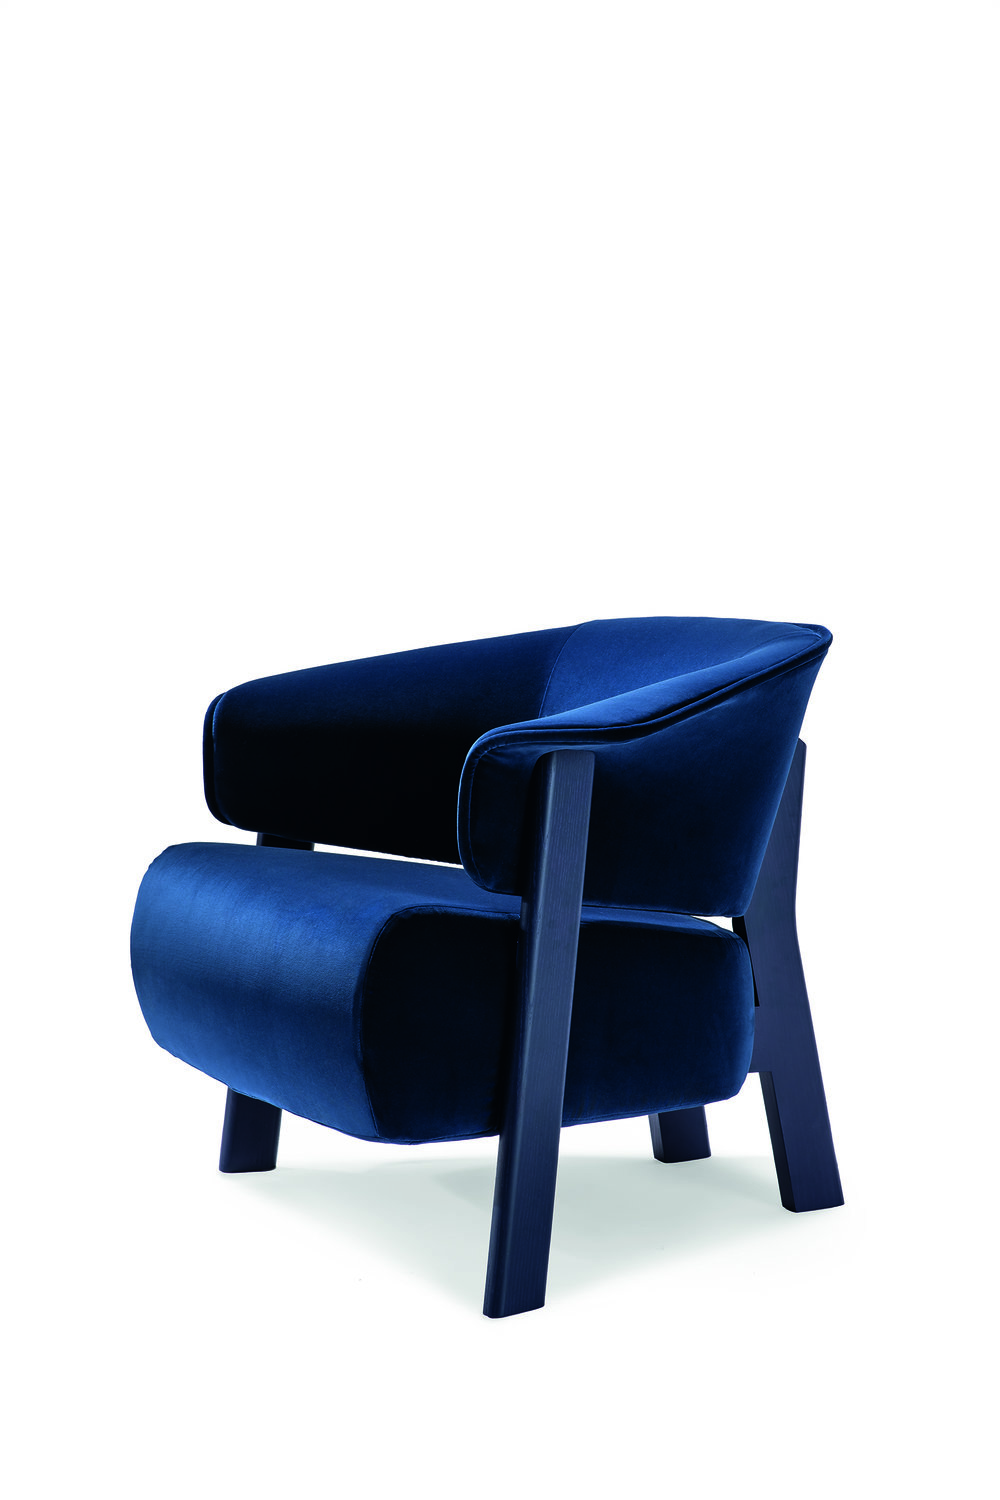 The  Back-Wing armchair  designed by  Patricia Urquiola  for  Cassina . Photo © Cassina.